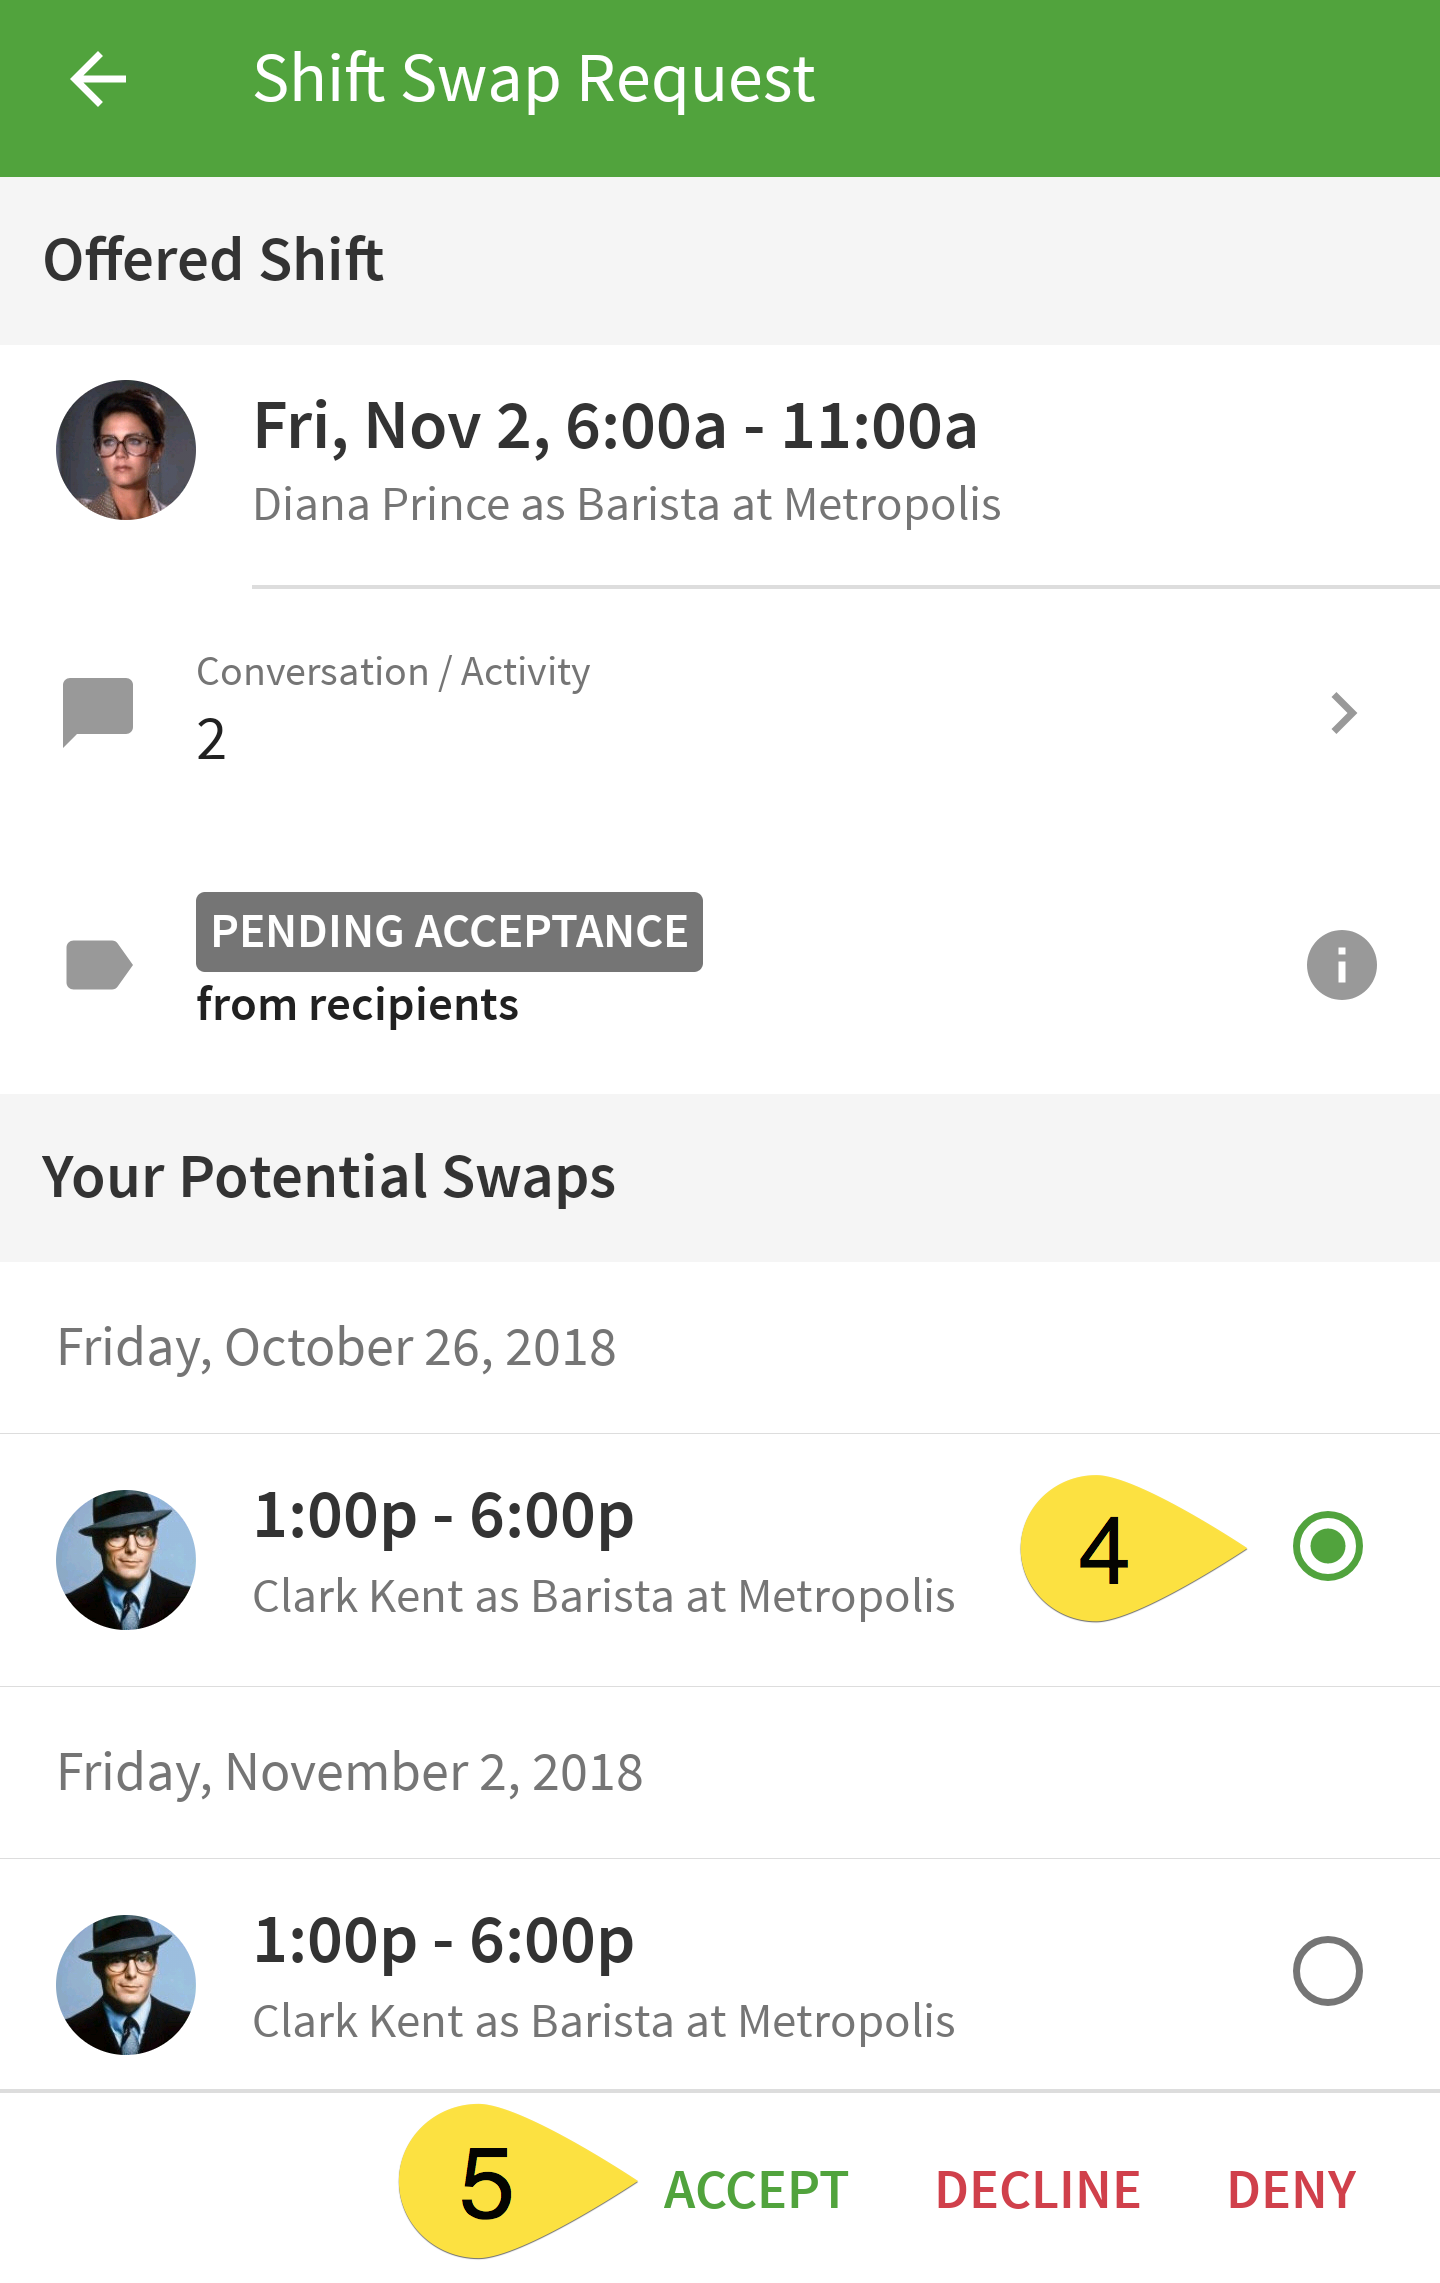 Accept swap request